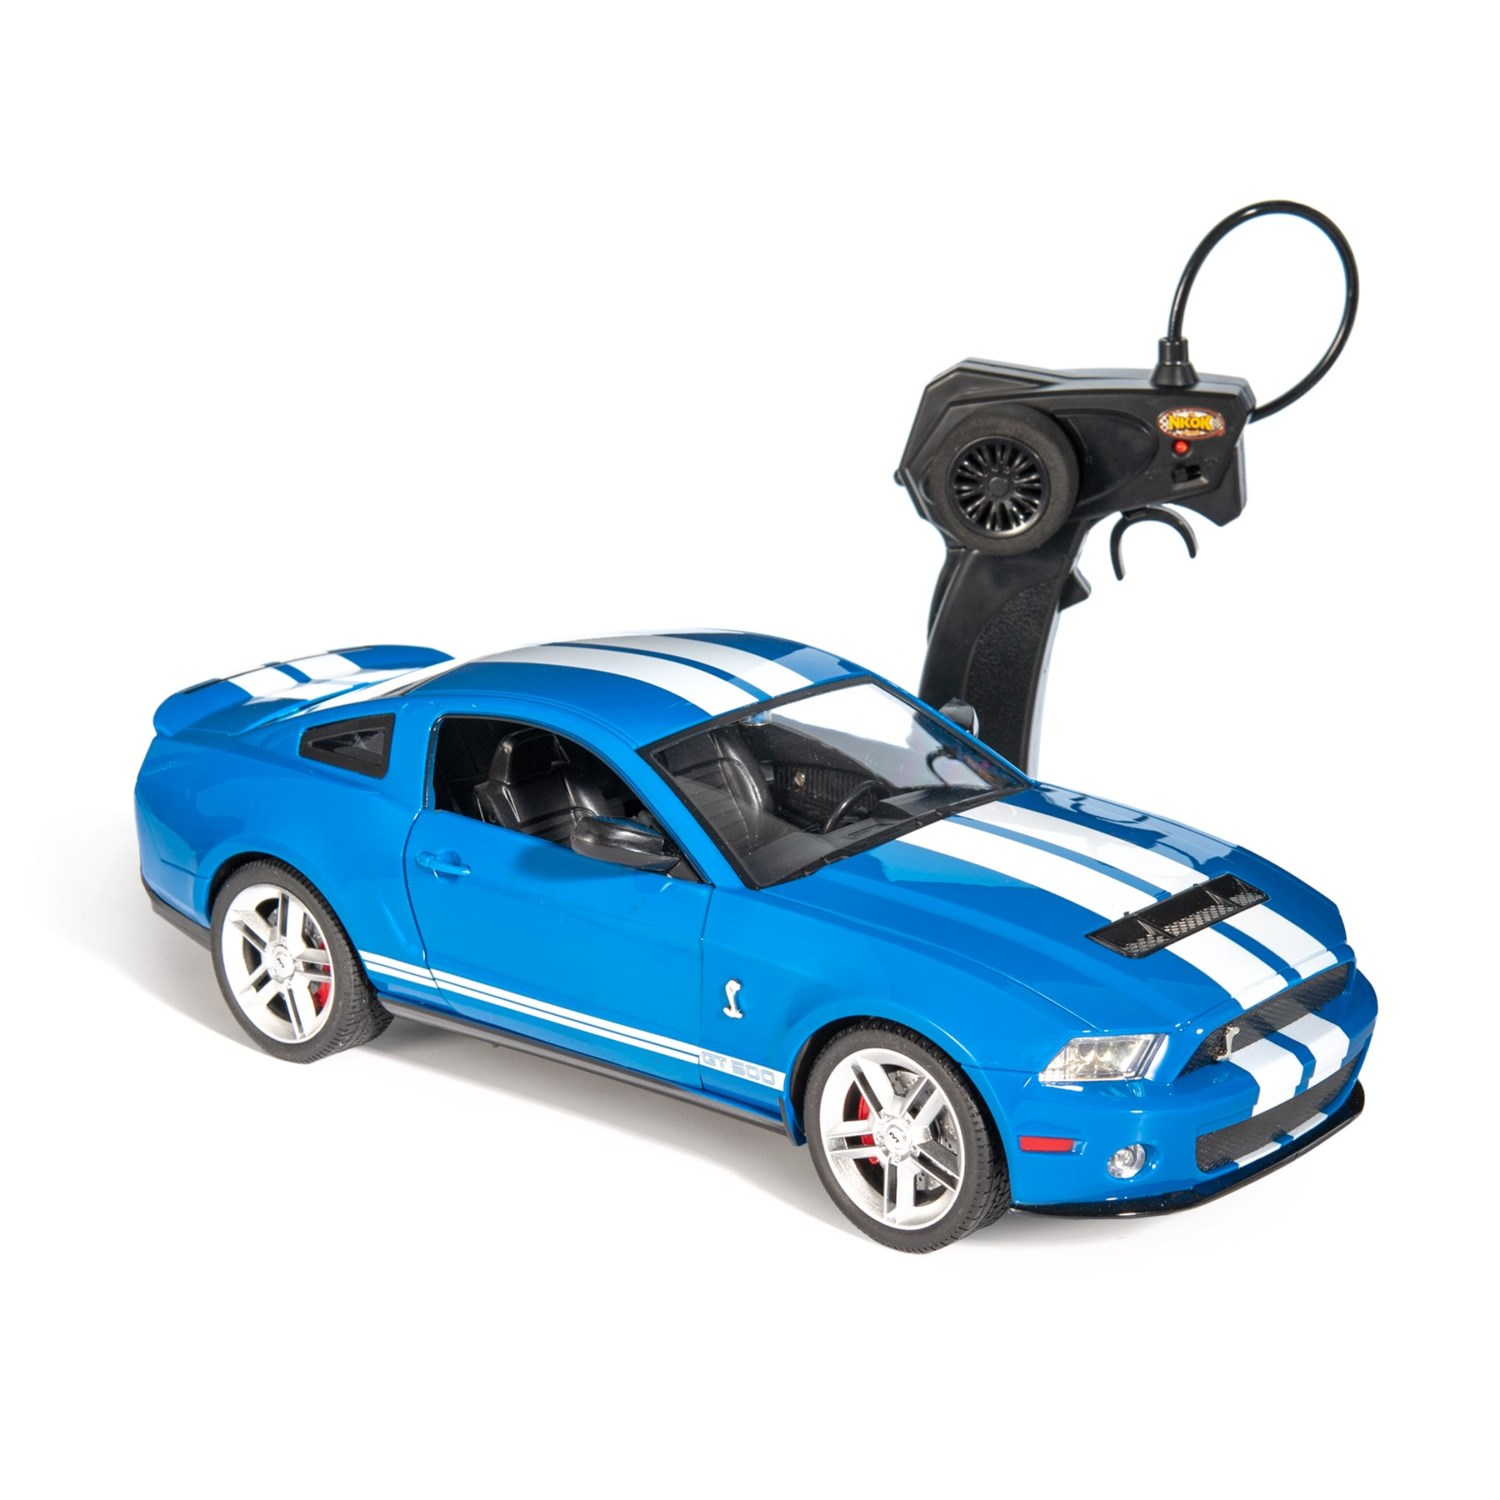 Luxe blue ford shelby mustang gt 500 remote control car 114 scale tap to expand